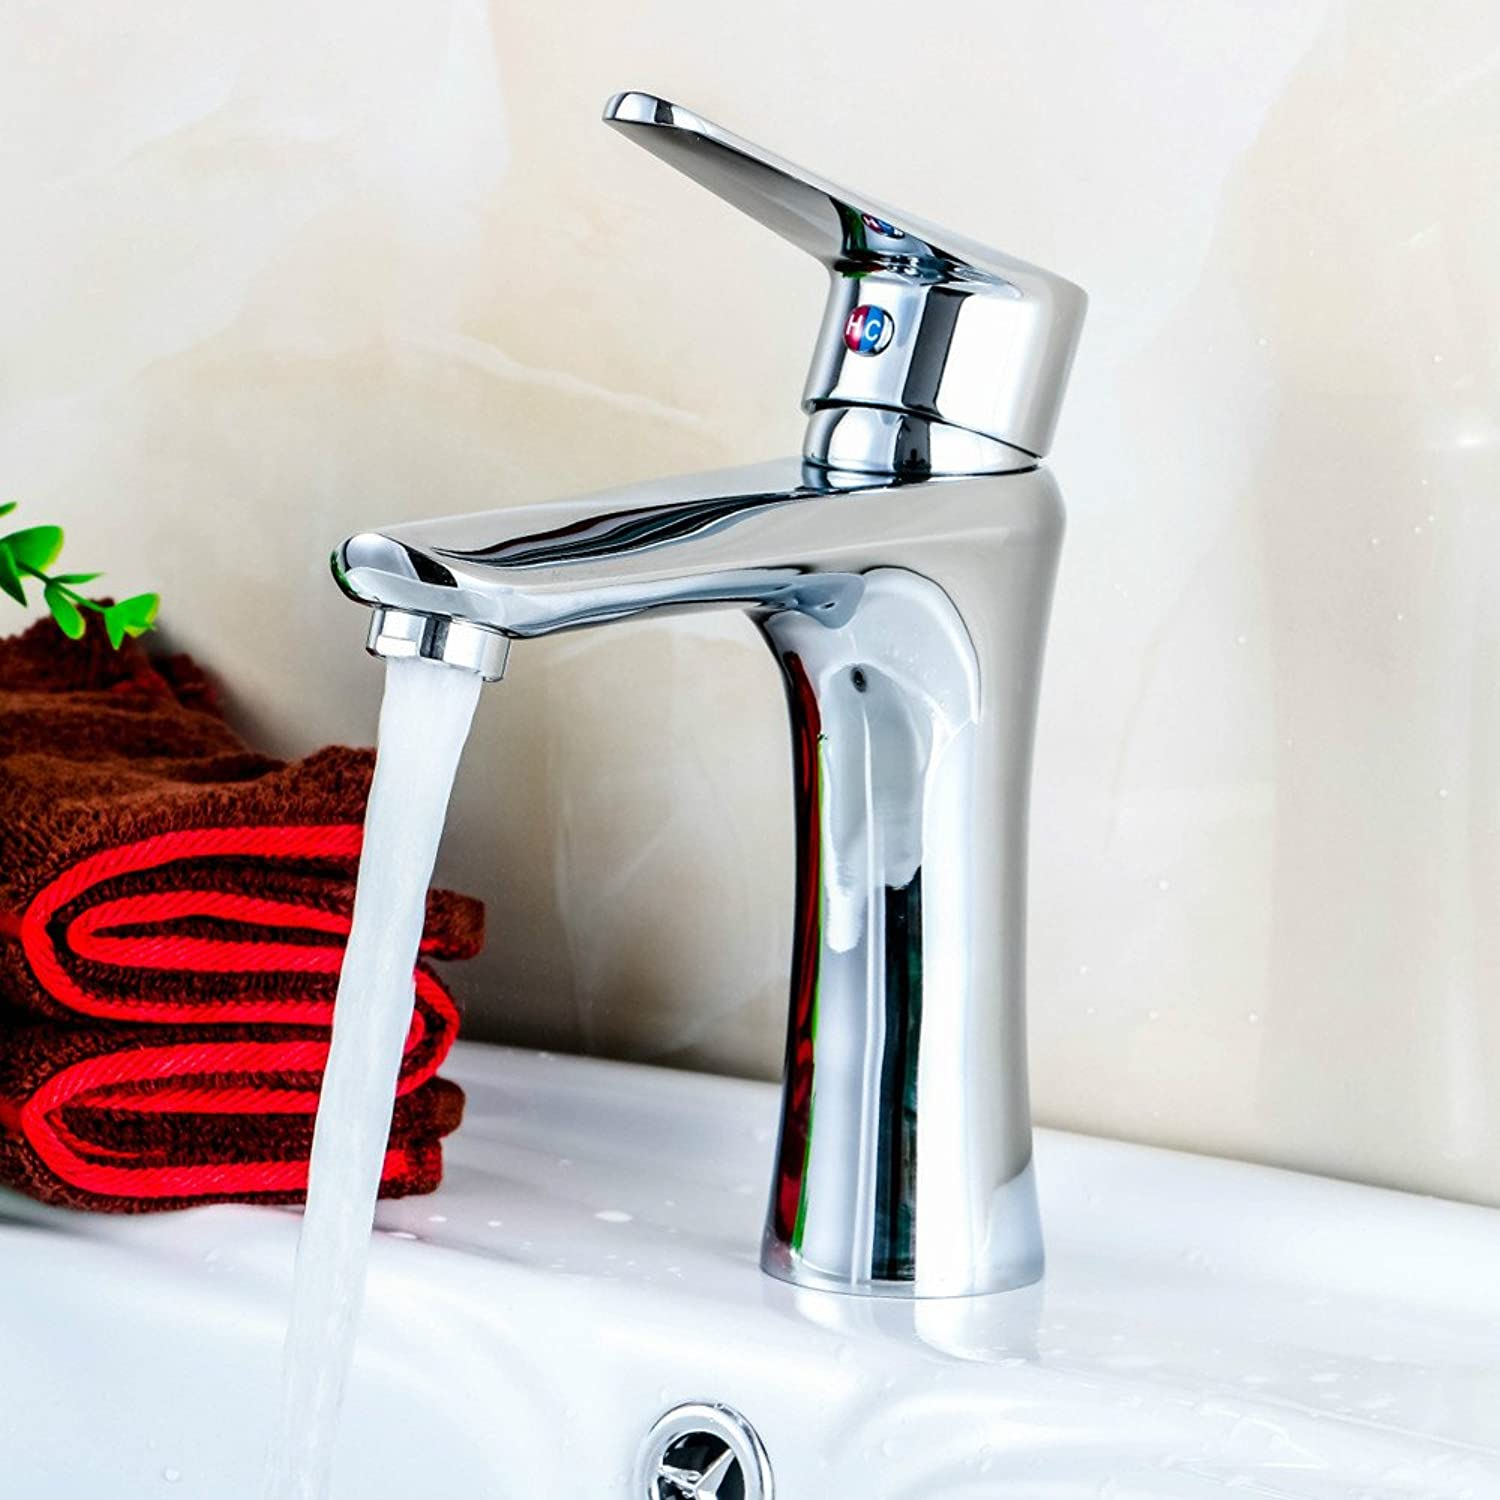 Hlluya Professional Sink Mixer Tap Kitchen Faucet Full Hot and cold copper single hole basin Mixer Taps ceramic basin Mixer Taps Corrosion Resistant